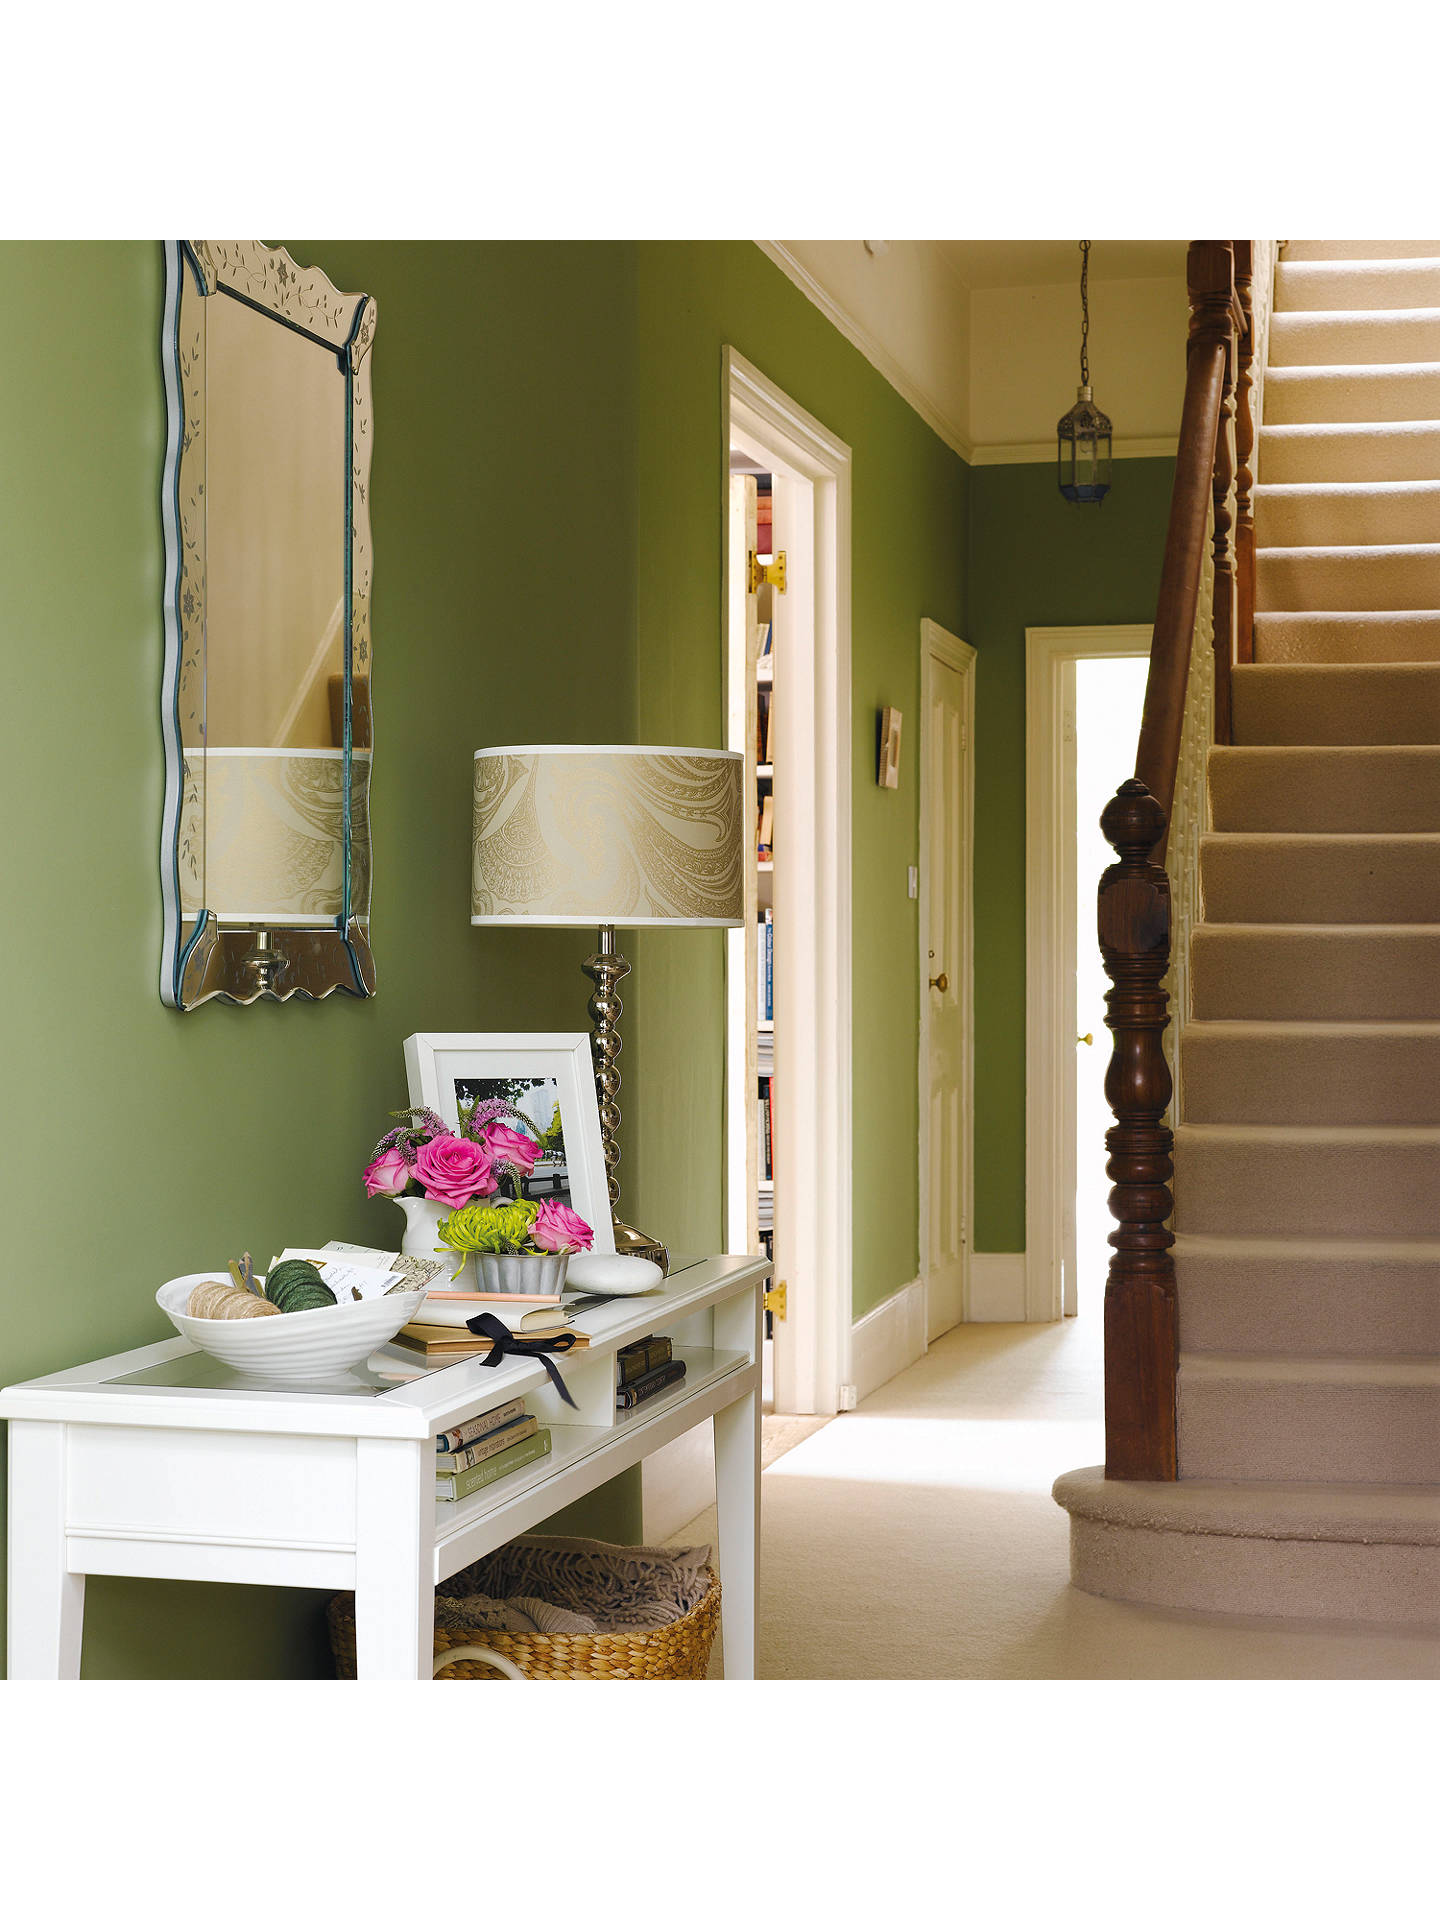 Buy The Little Greene Paint Company Absolute Matt Emulsion Greens Tester Pot, Garden (86) Online at johnlewis.com